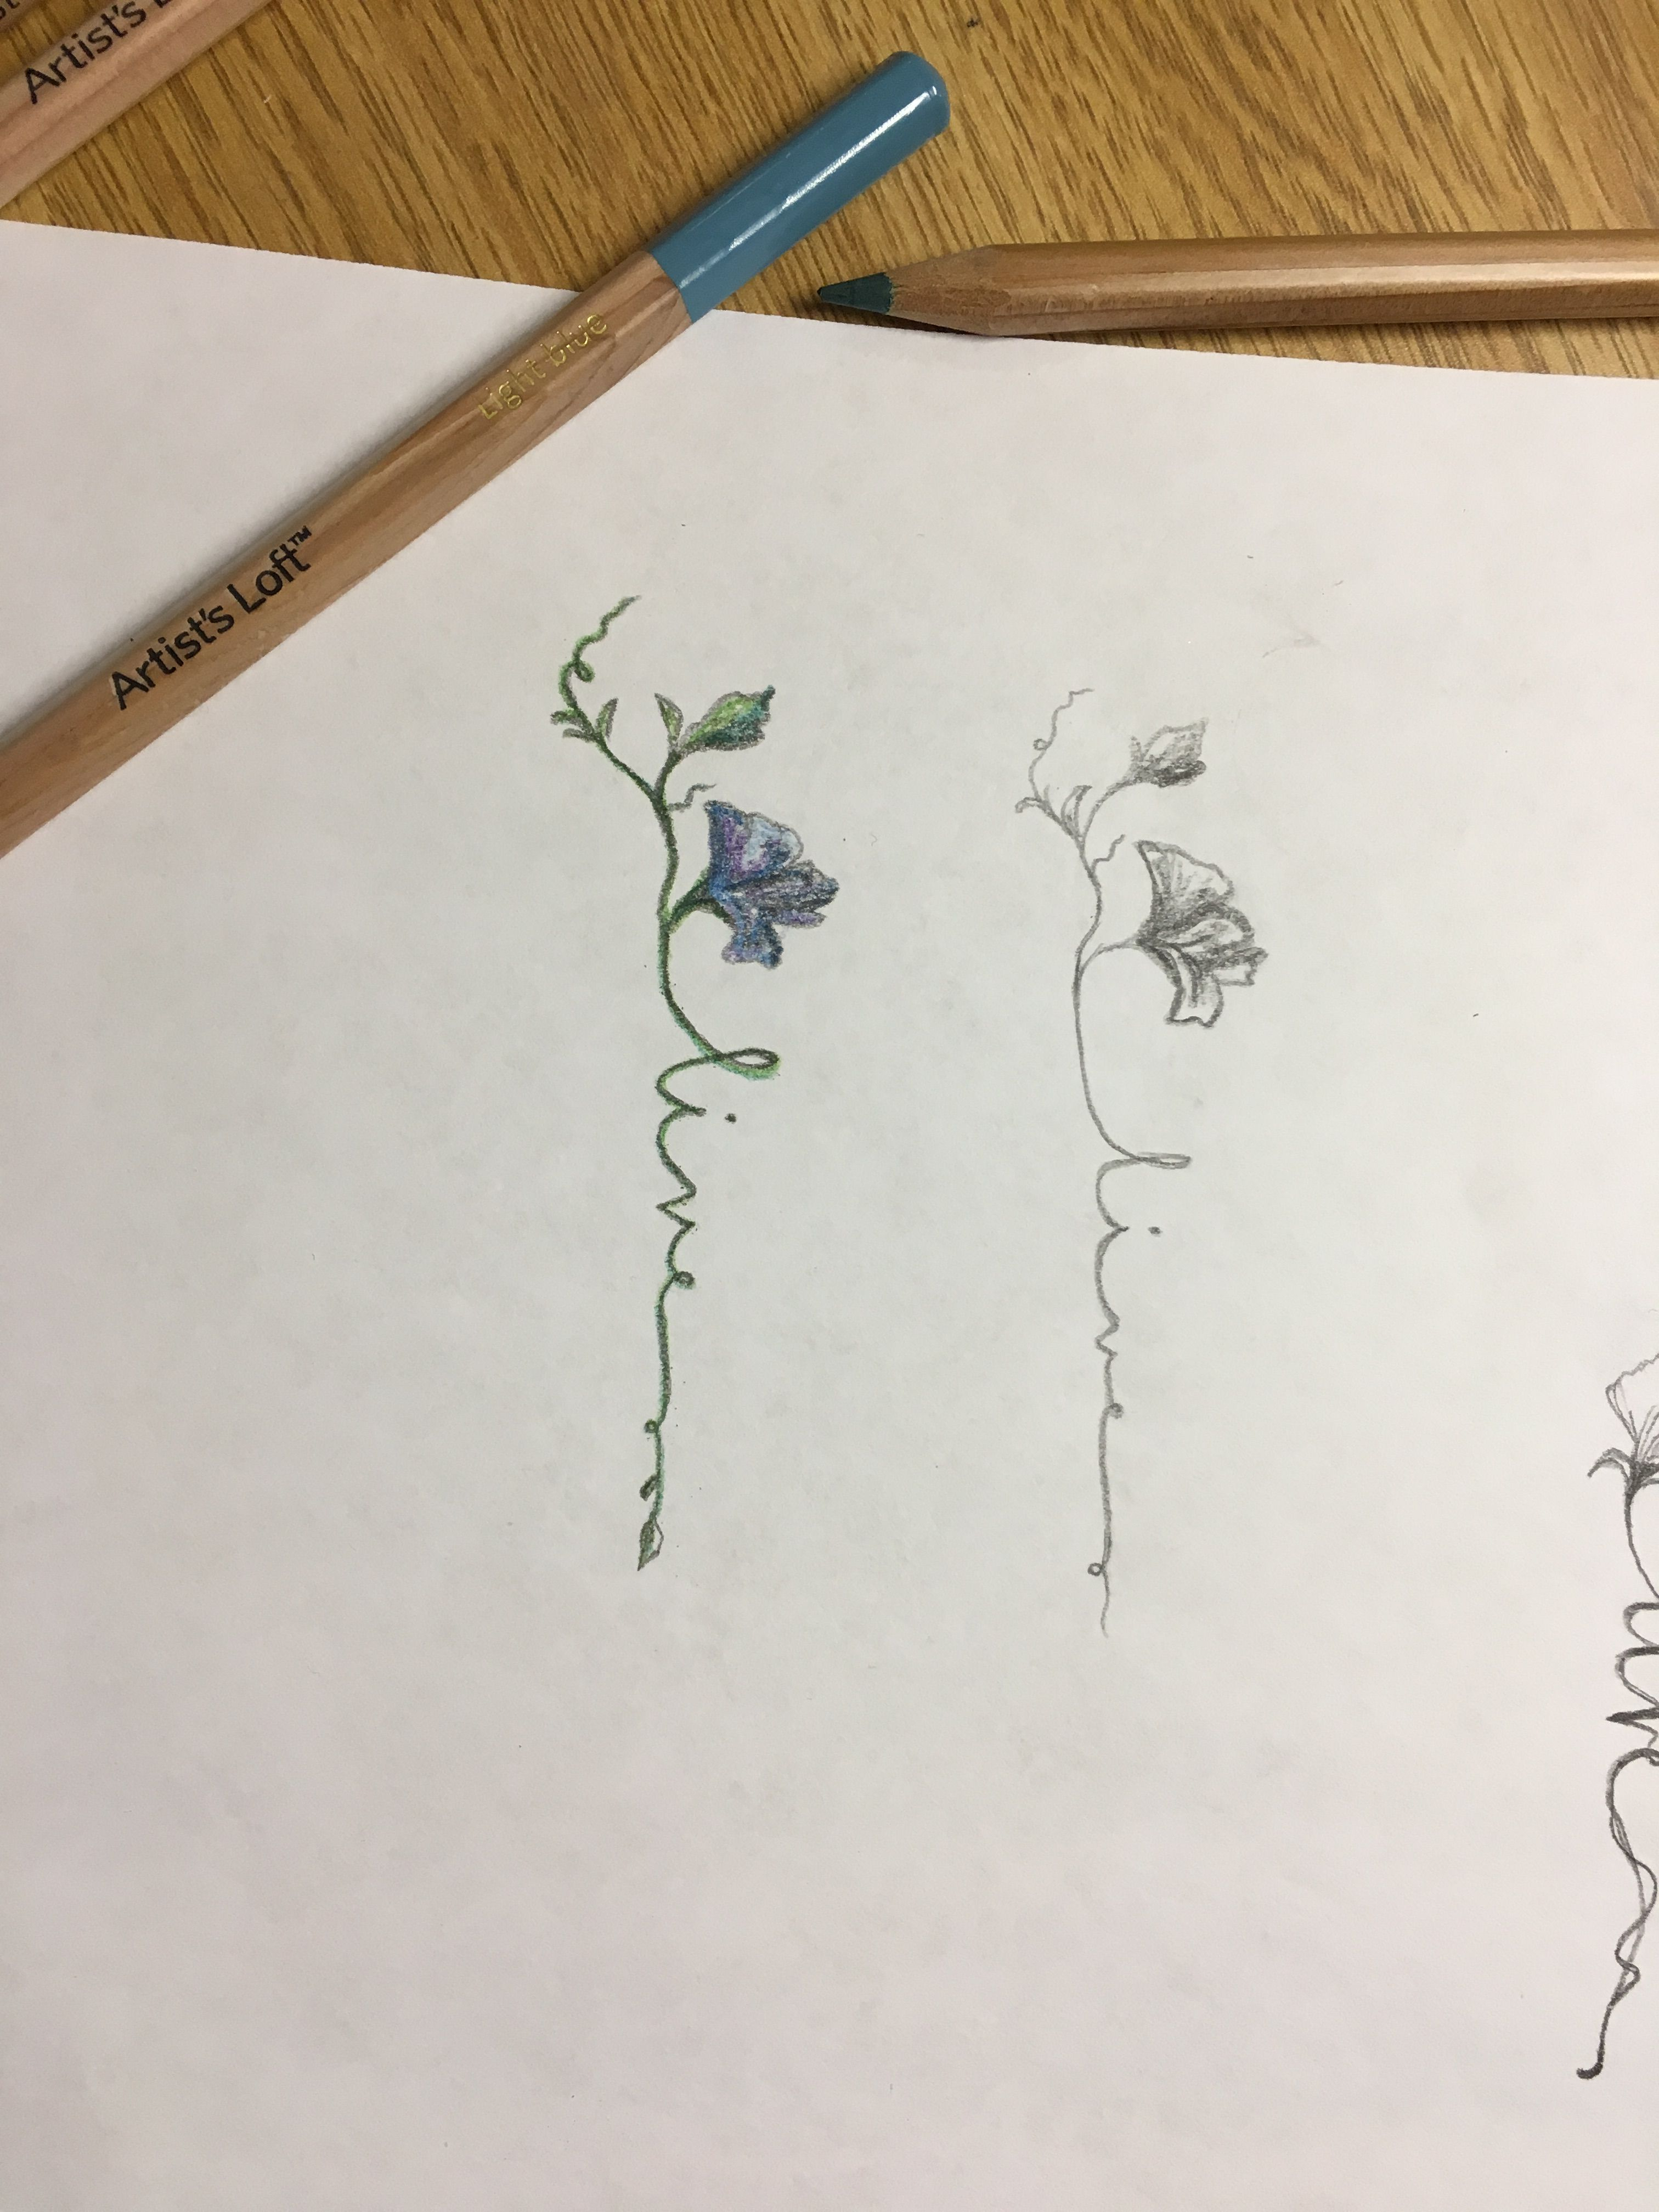 Watercolor For The Flower Make The Green Smaller Leaf Into A Small Flower Bud Wording For Liv Name Flower Tattoo Delicate Flower Tattoo Small Flower Tattoos